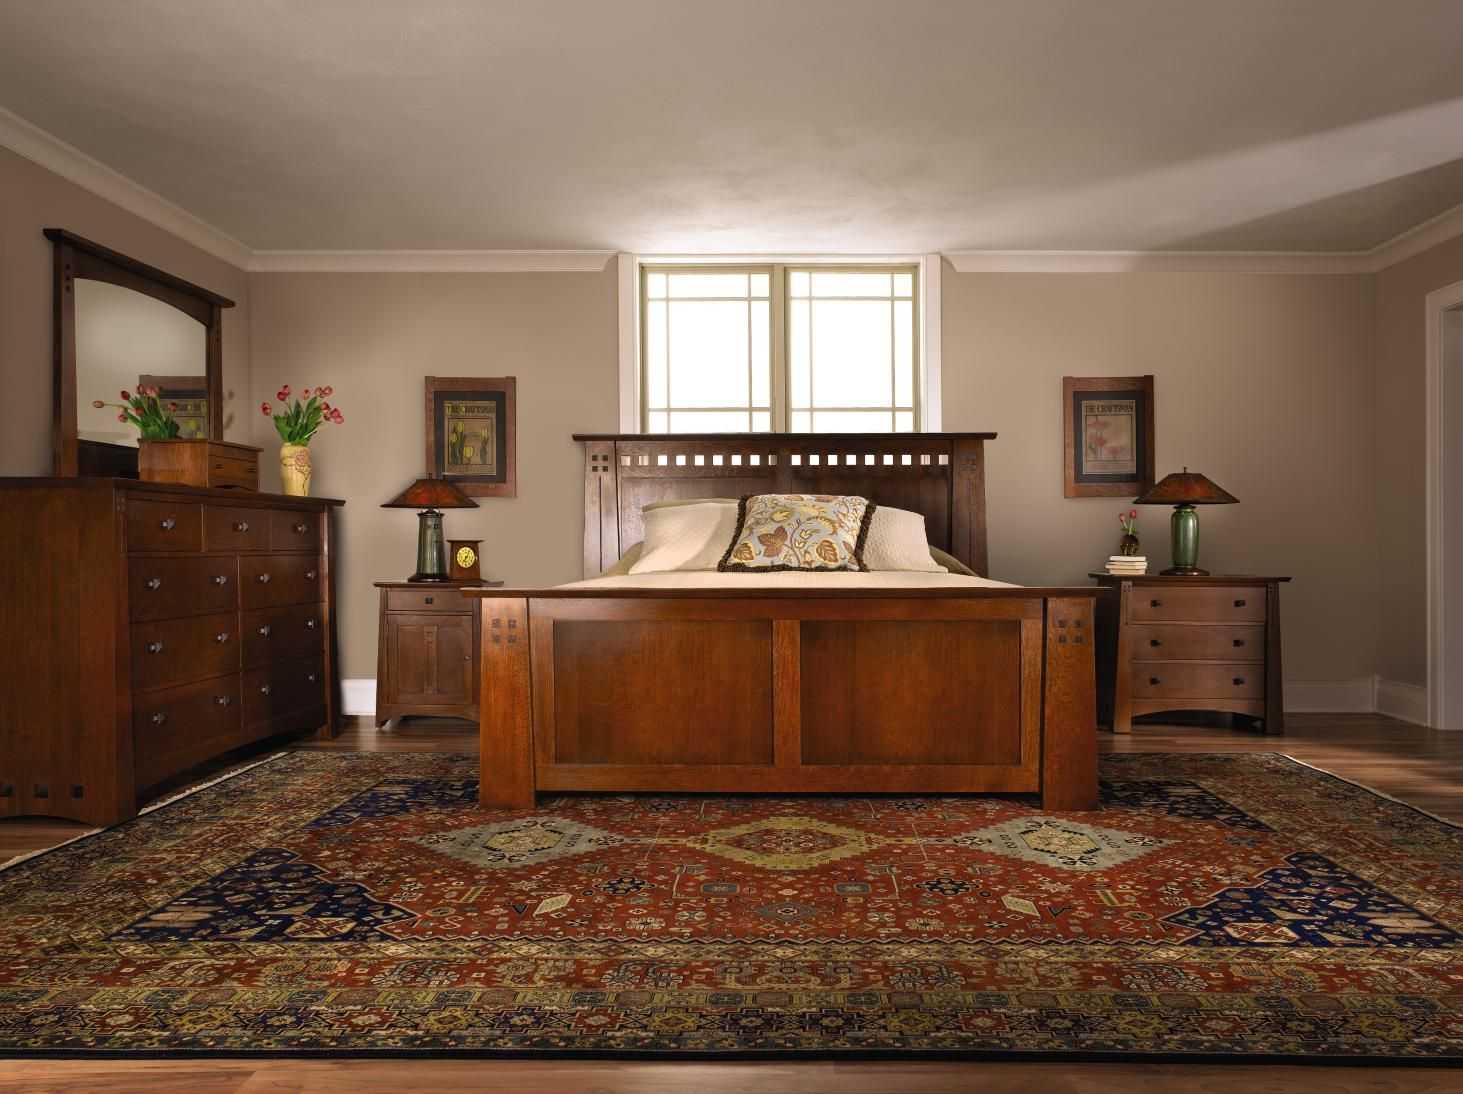 Arts and crafts style bedroom furniture - Stickley Highlands Bed A Seamless Union Of Classic Stickley Arts Crafts Style With A Modern Craftsman Furniturebedroom